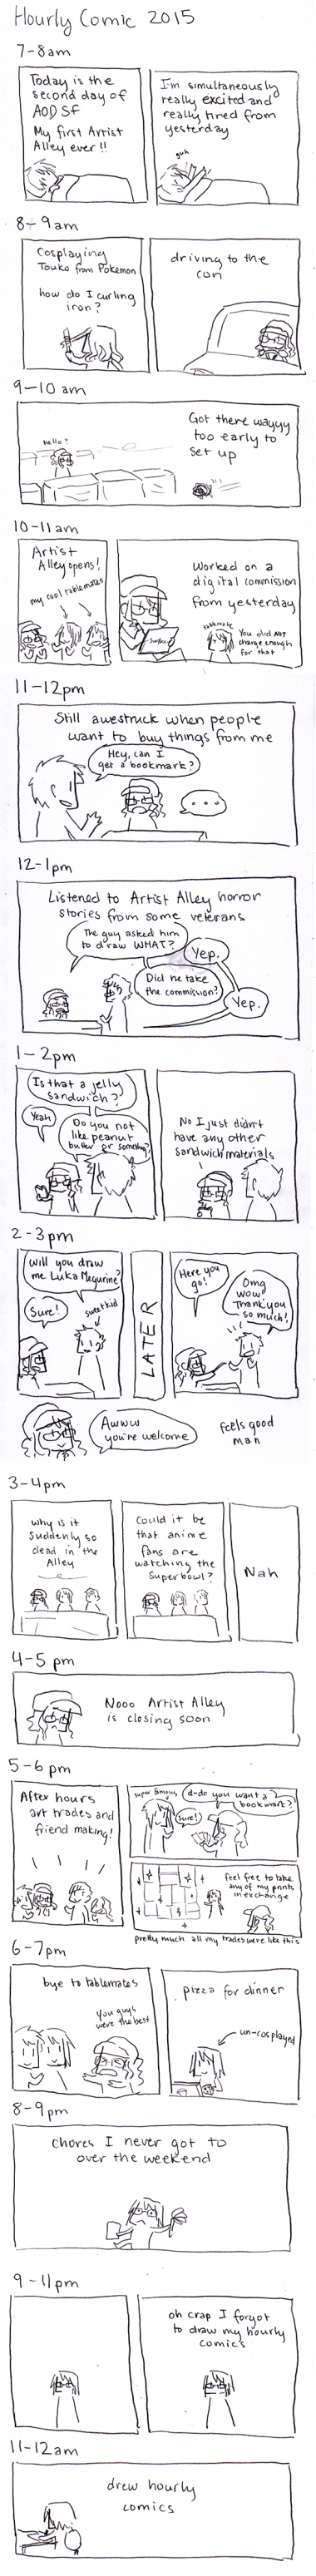 Hourly Comics Day 2015